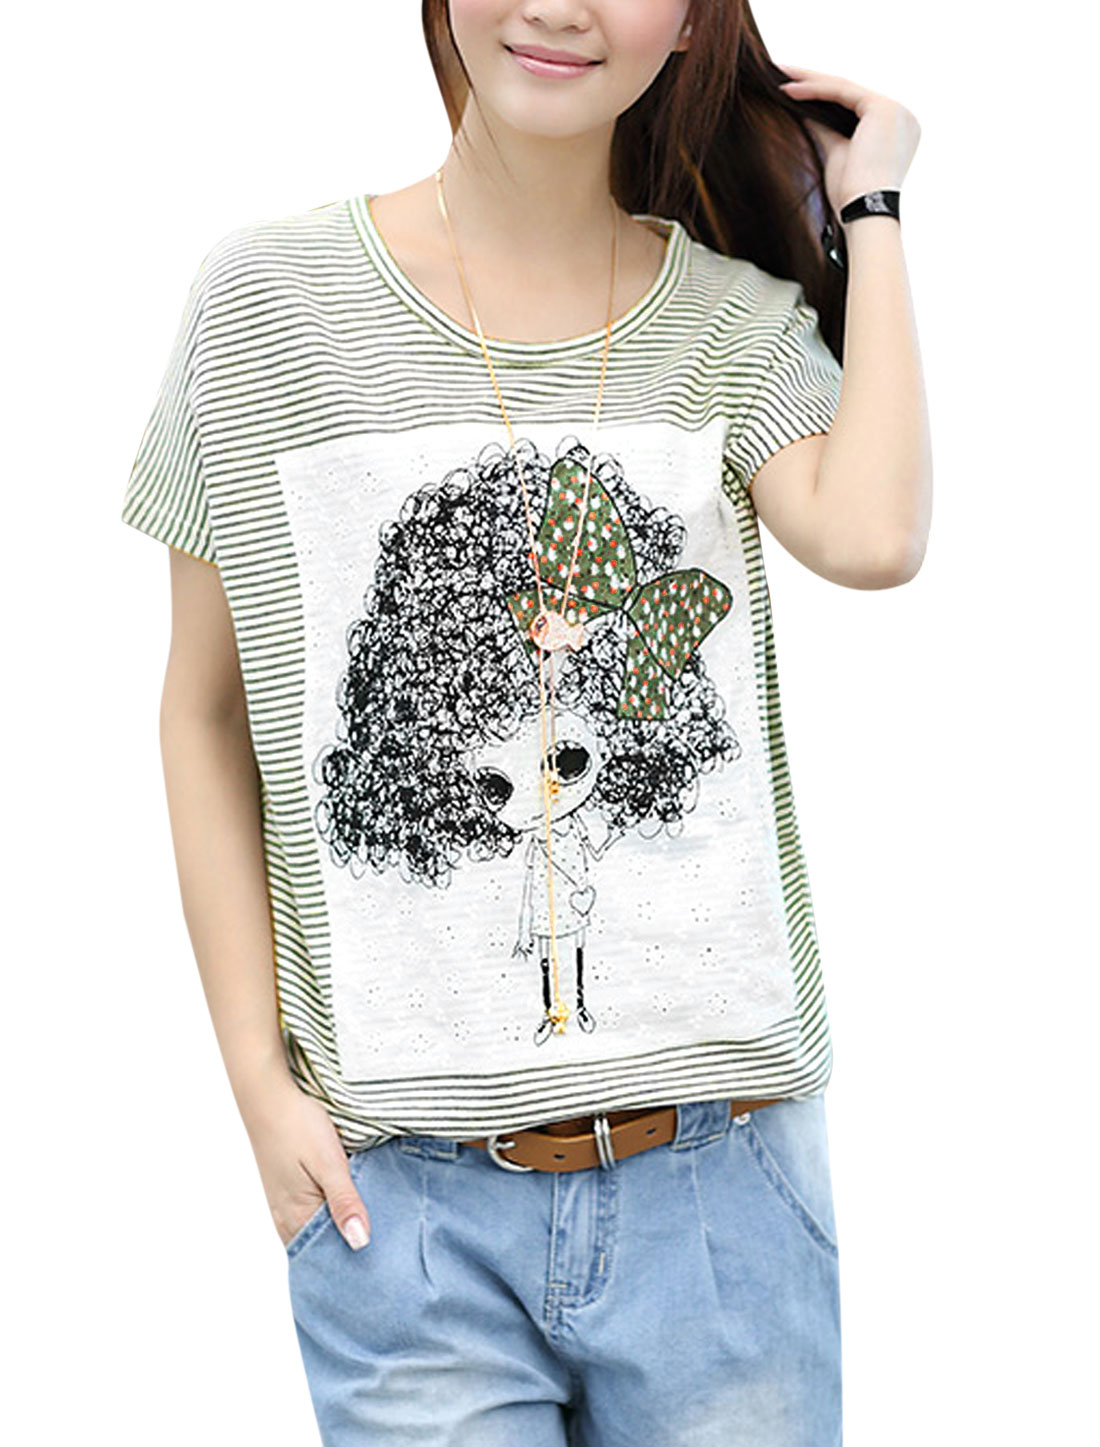 Ladies Casual Stripes Cartoon Portrait Applique Loose T-Shirt Beige Green S